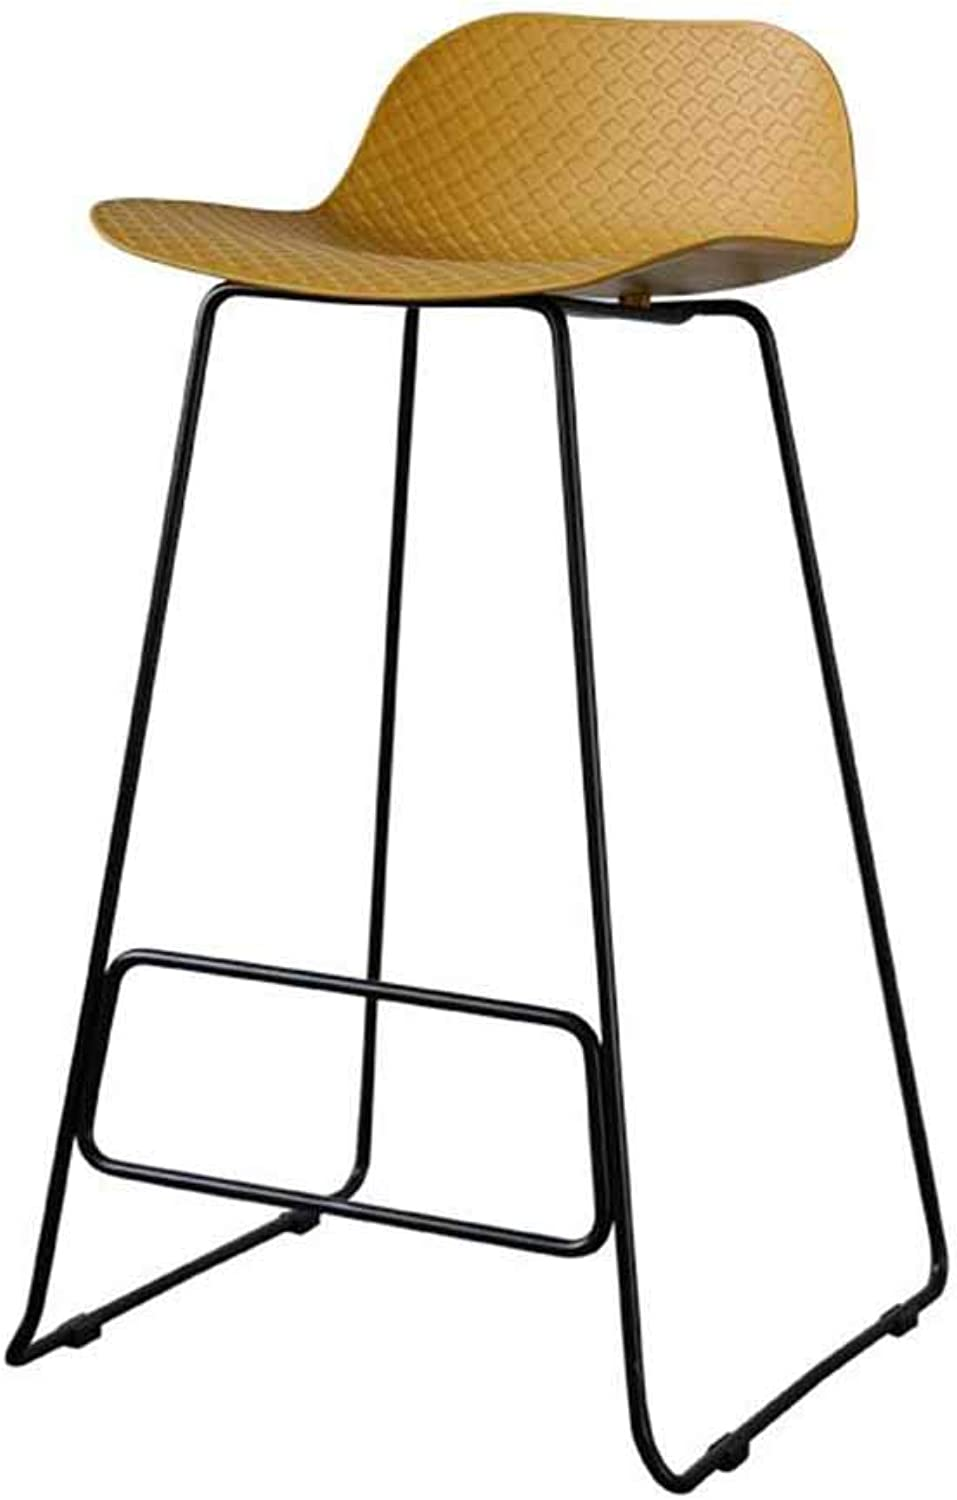 XUERUI Barstools Barstool High Stool Metal Bar Cafe Household Nordic Multifunction Multi-color Optional Strong Stability (color   Black feet Turmeric)